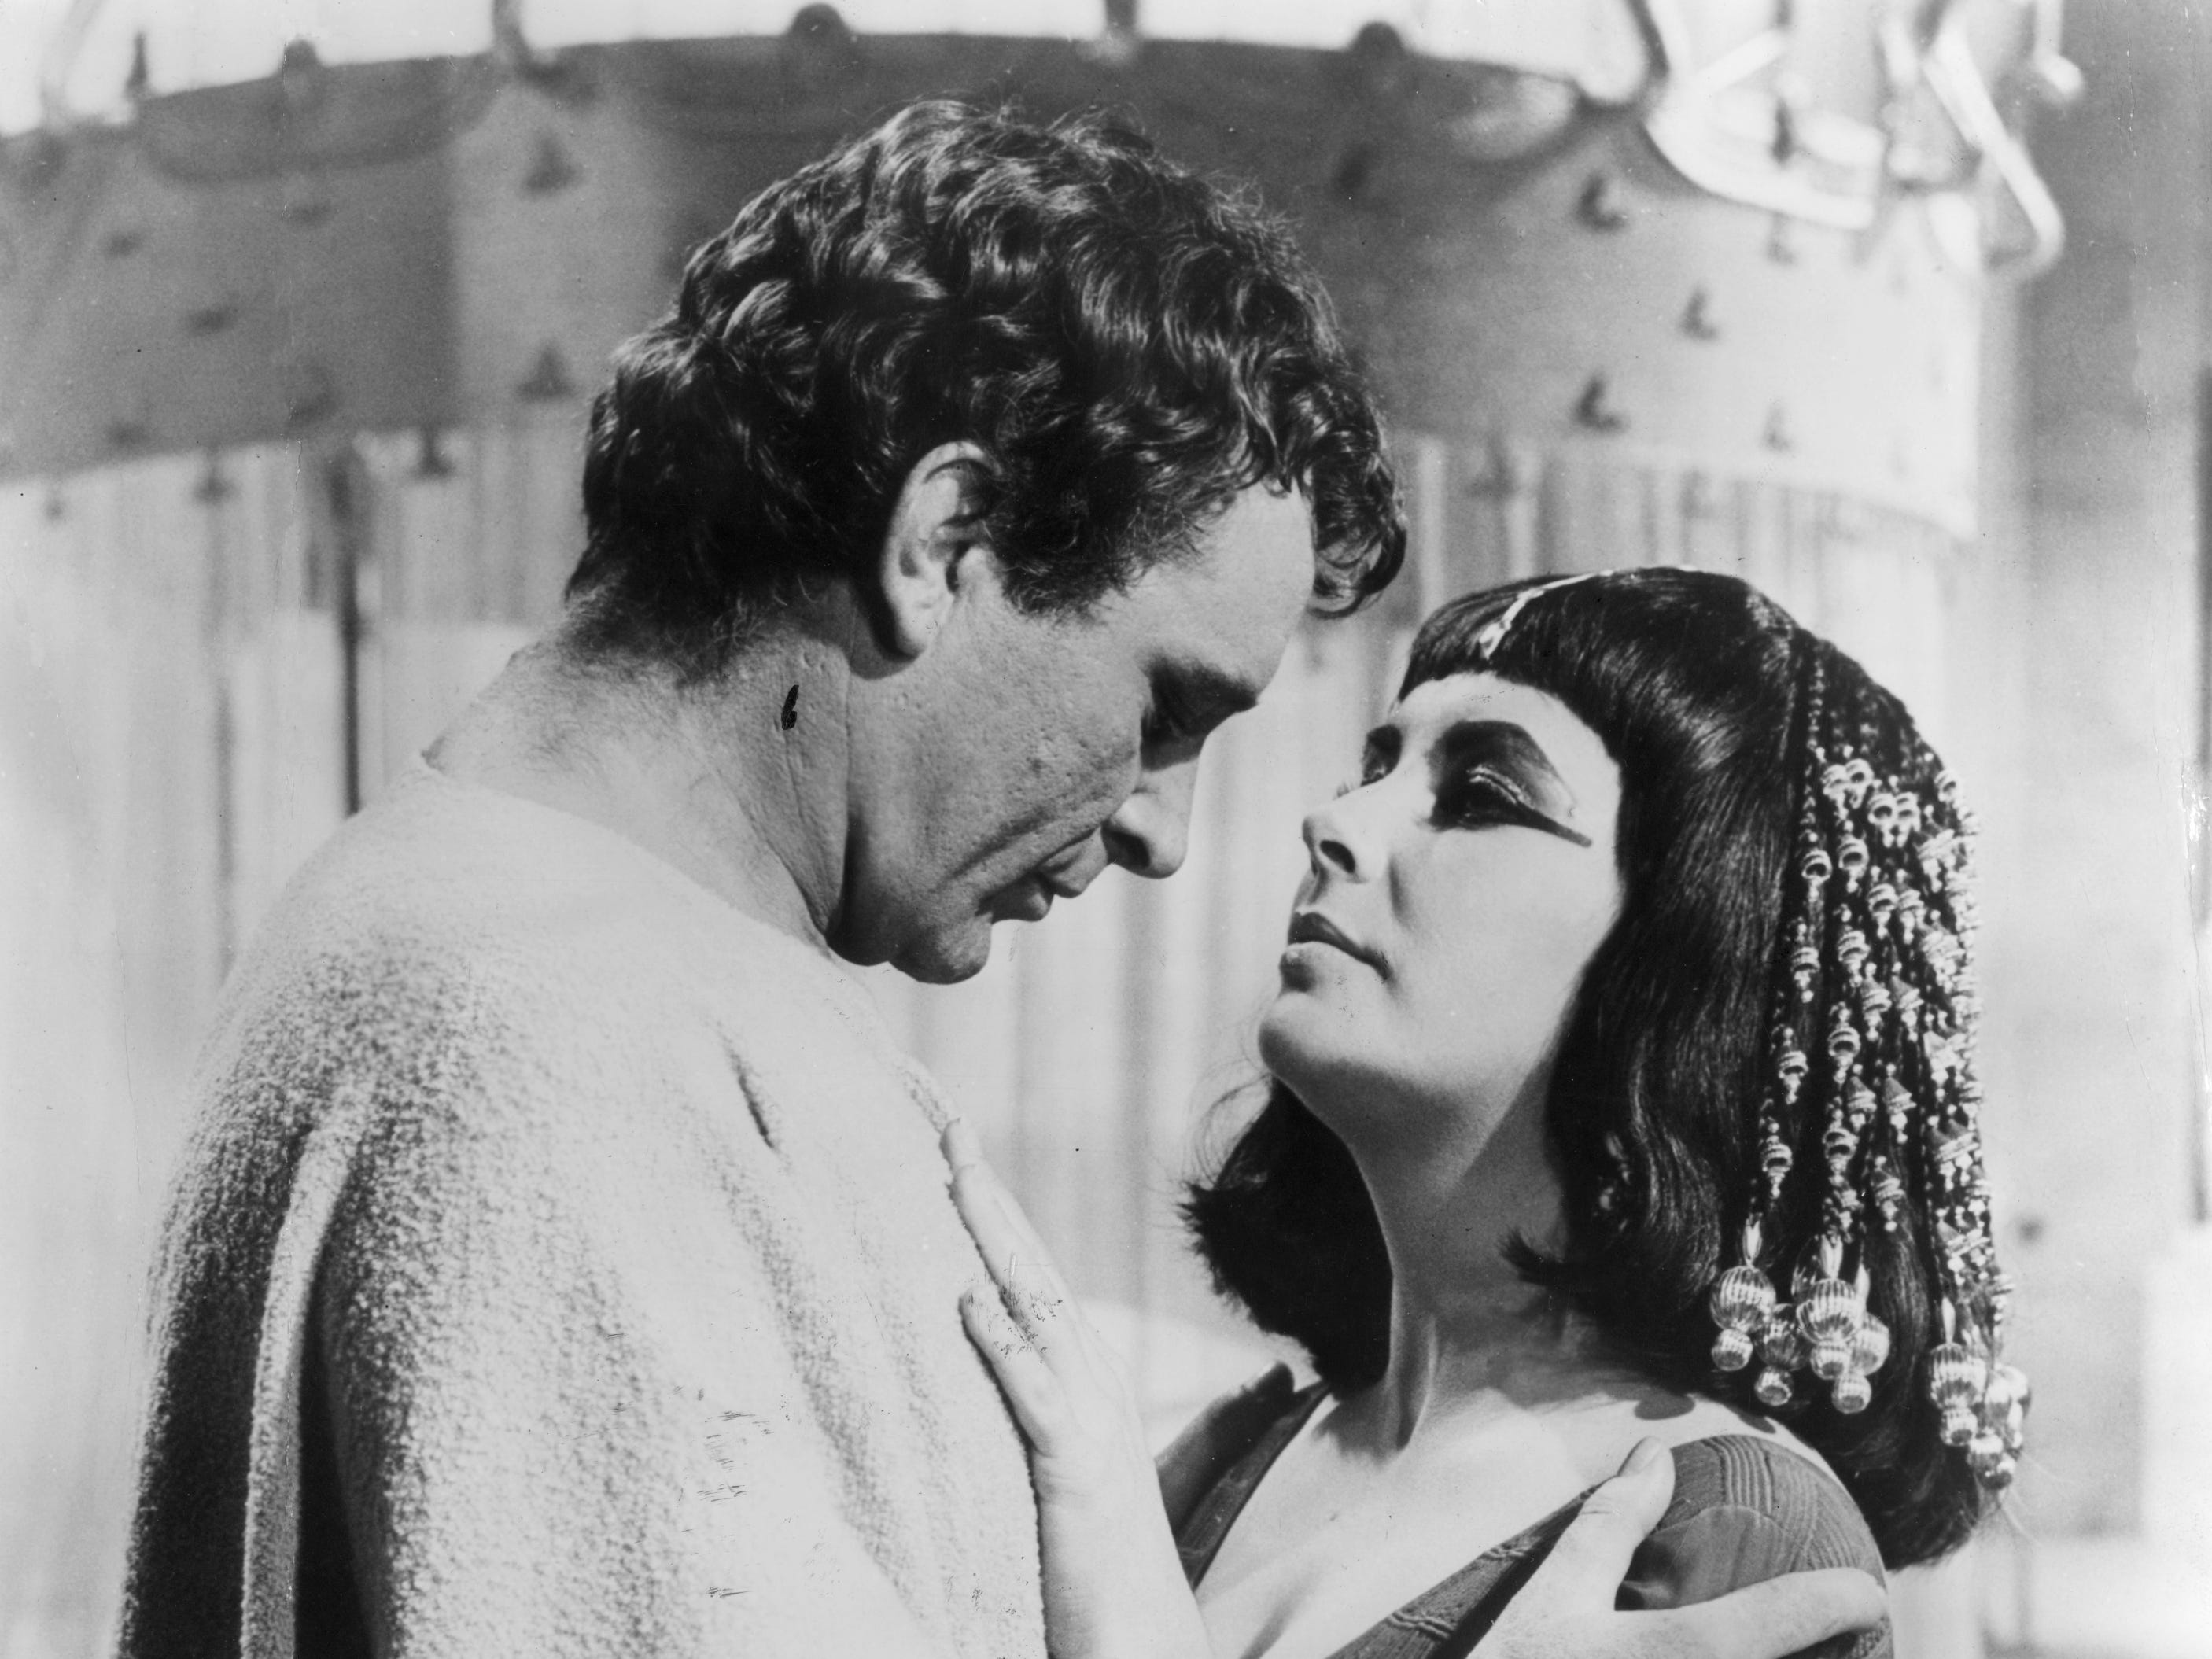 FILE  On June 12th the film Cleopatra will celebrate its 50th anniversary the 1963 film still remains one of the most extravagant and expensive movies ever made costing $42 million. Please visit link to view more archival imagery.   http://www.gettyimages.co.uk/Search/Search.aspx?EventId=167877641&EditorialProduct=Archival&esource=maplinARC_uki_13jun 1962:  Welsh actor Richard Burton (1925 - 1984) with his co-star and future wife, Elizabeth Taylor in the epic drama 'Cleopatra'.  (Photo by Hulton Archive/Getty Images) ORG XMIT: 167877641 ORIG FILE ID: 3164443